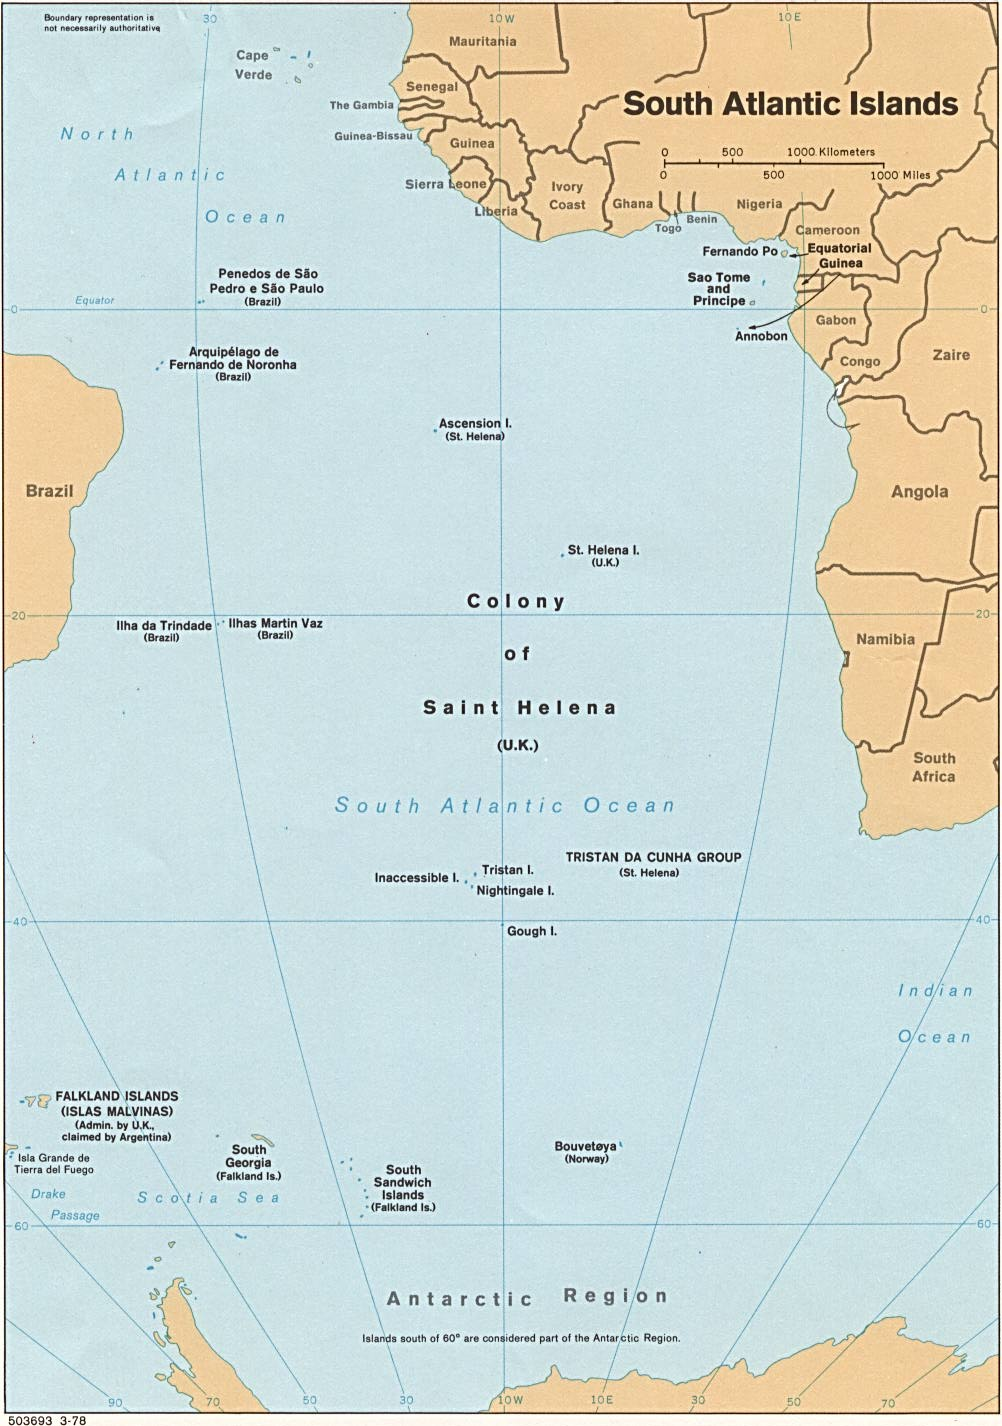 St Helena On World Map.Saint Helena Ascension And Tristan Da Cunha